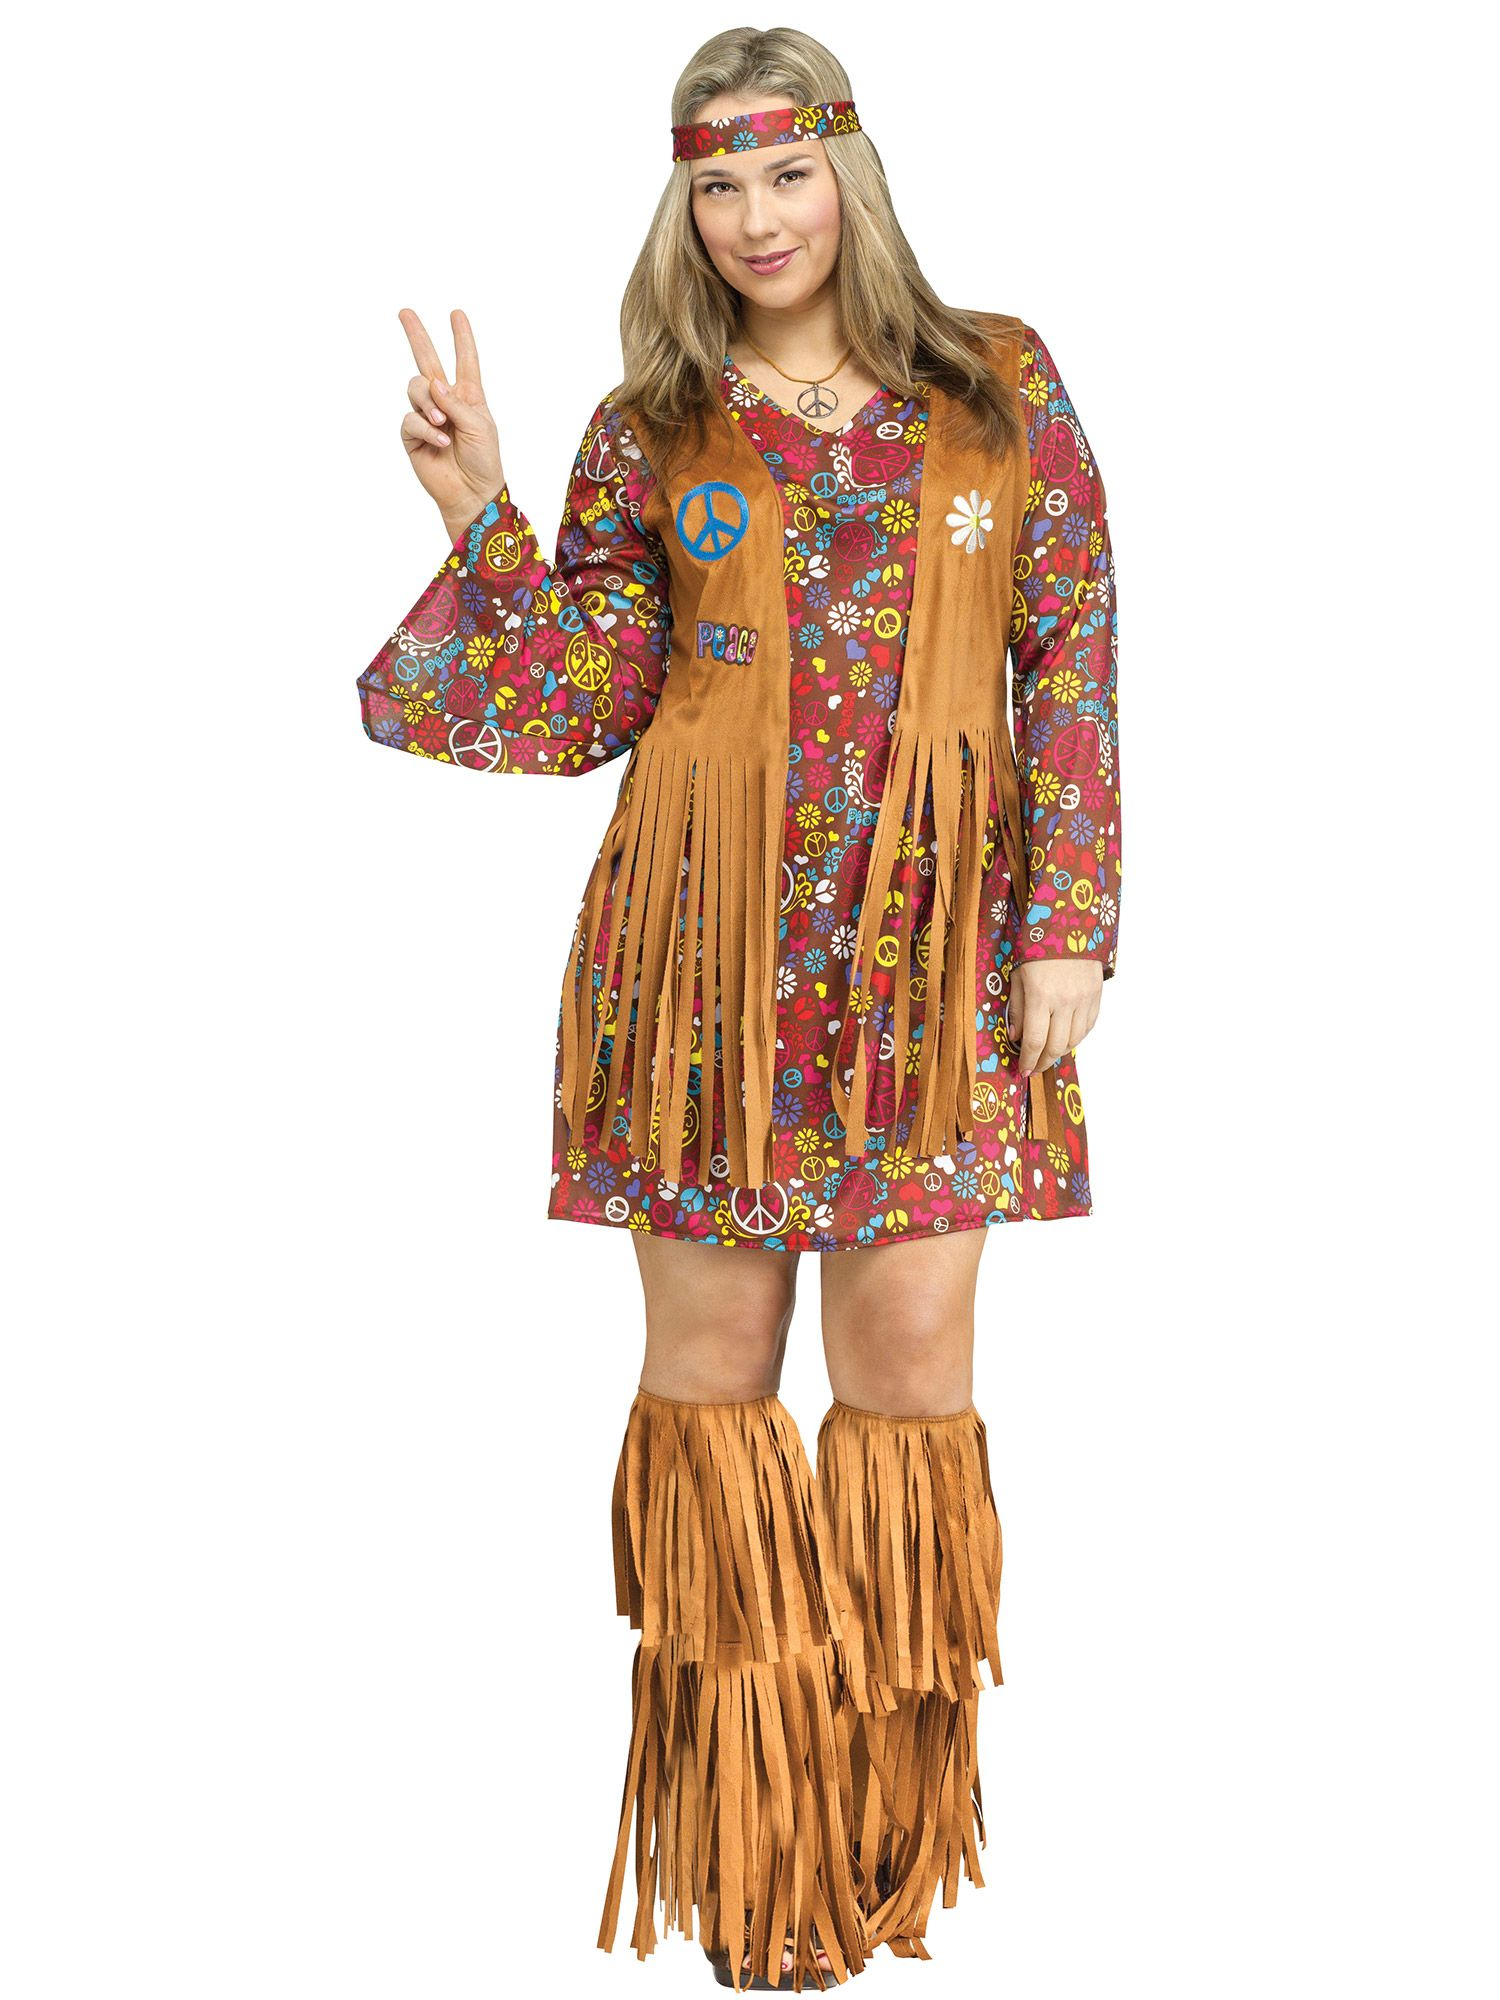 Plus Size Adult Plus Size Peace and Love Hippie Costume FW123455-PLUS